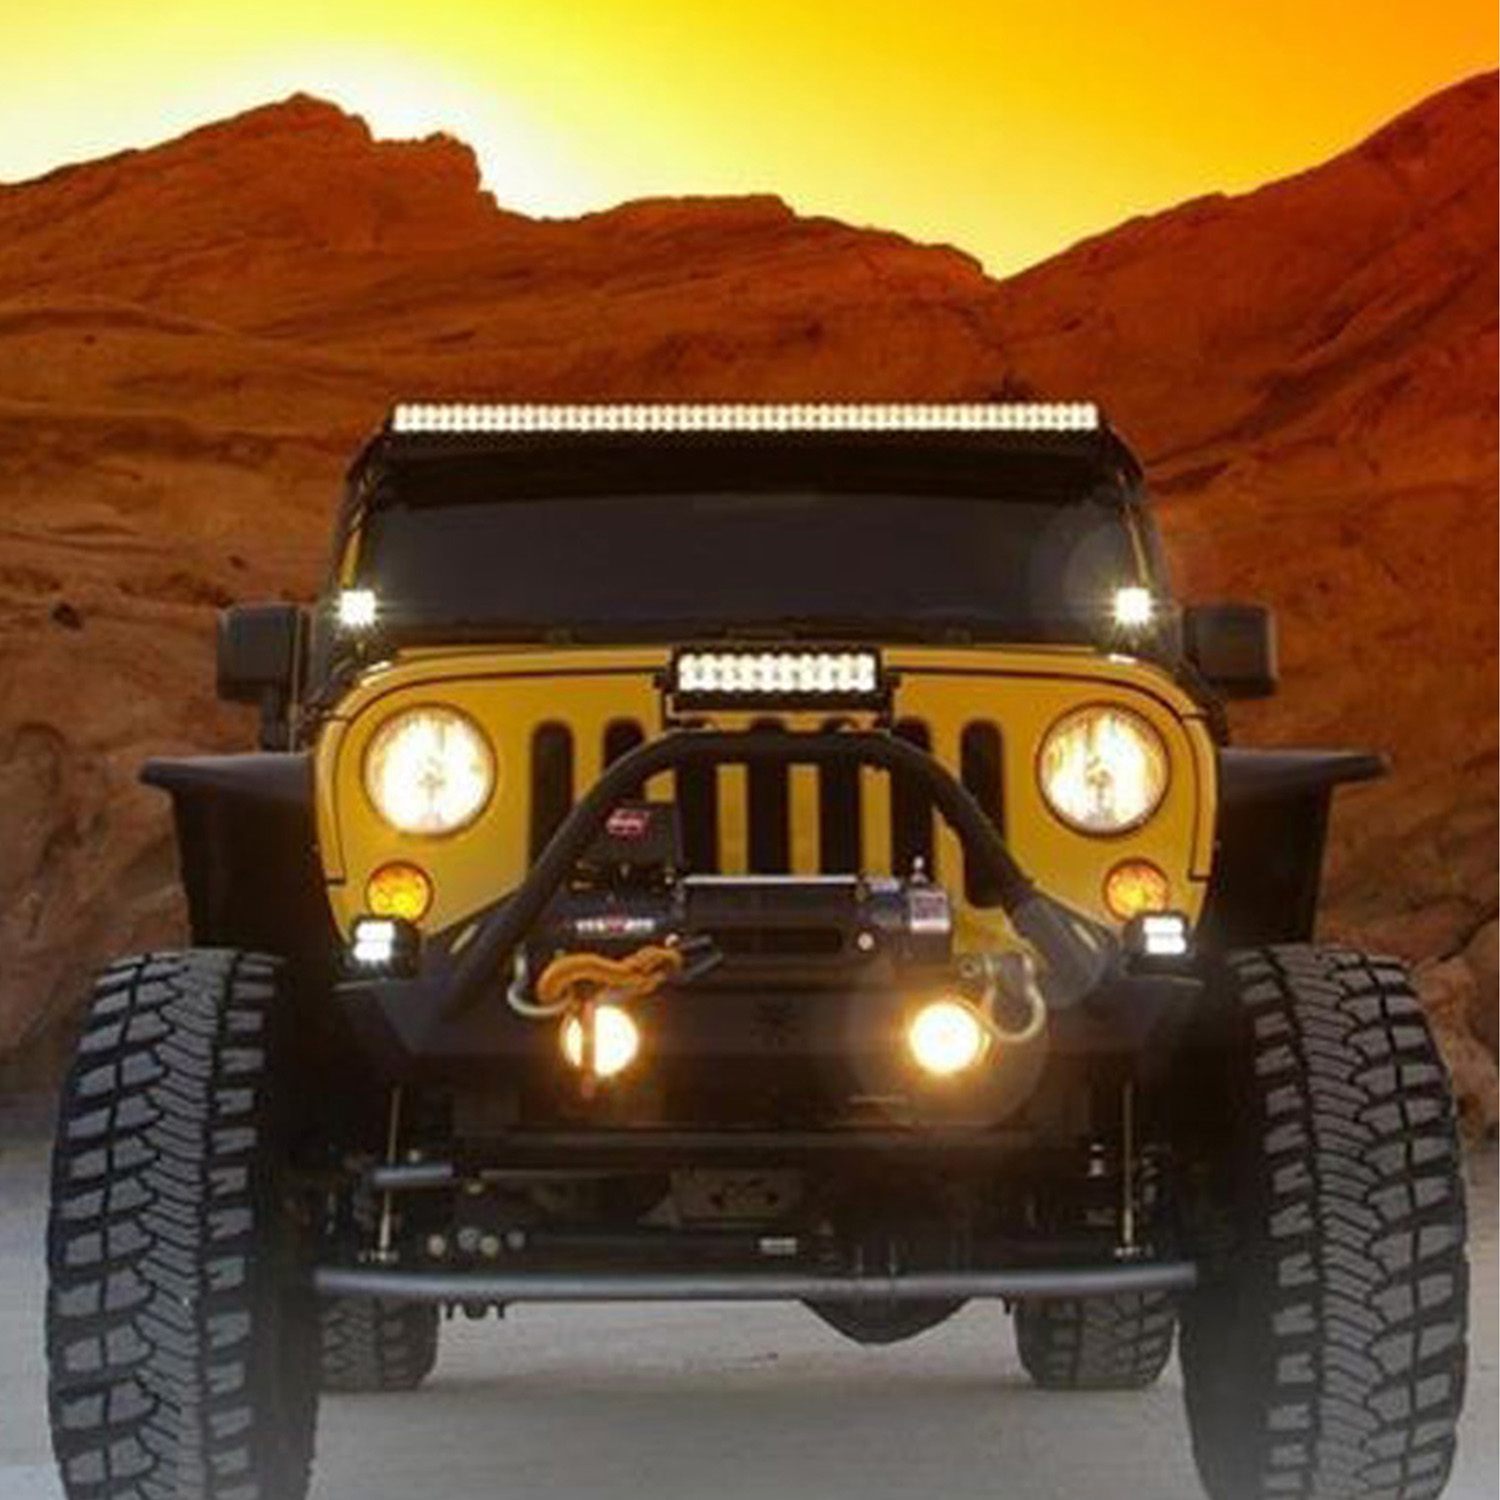 Tuff Plus 12inch 72w Led Light Bar Combo High Beam For Jeep With Hardtop Wiring Harness Cree Offroad Suv Wrangler